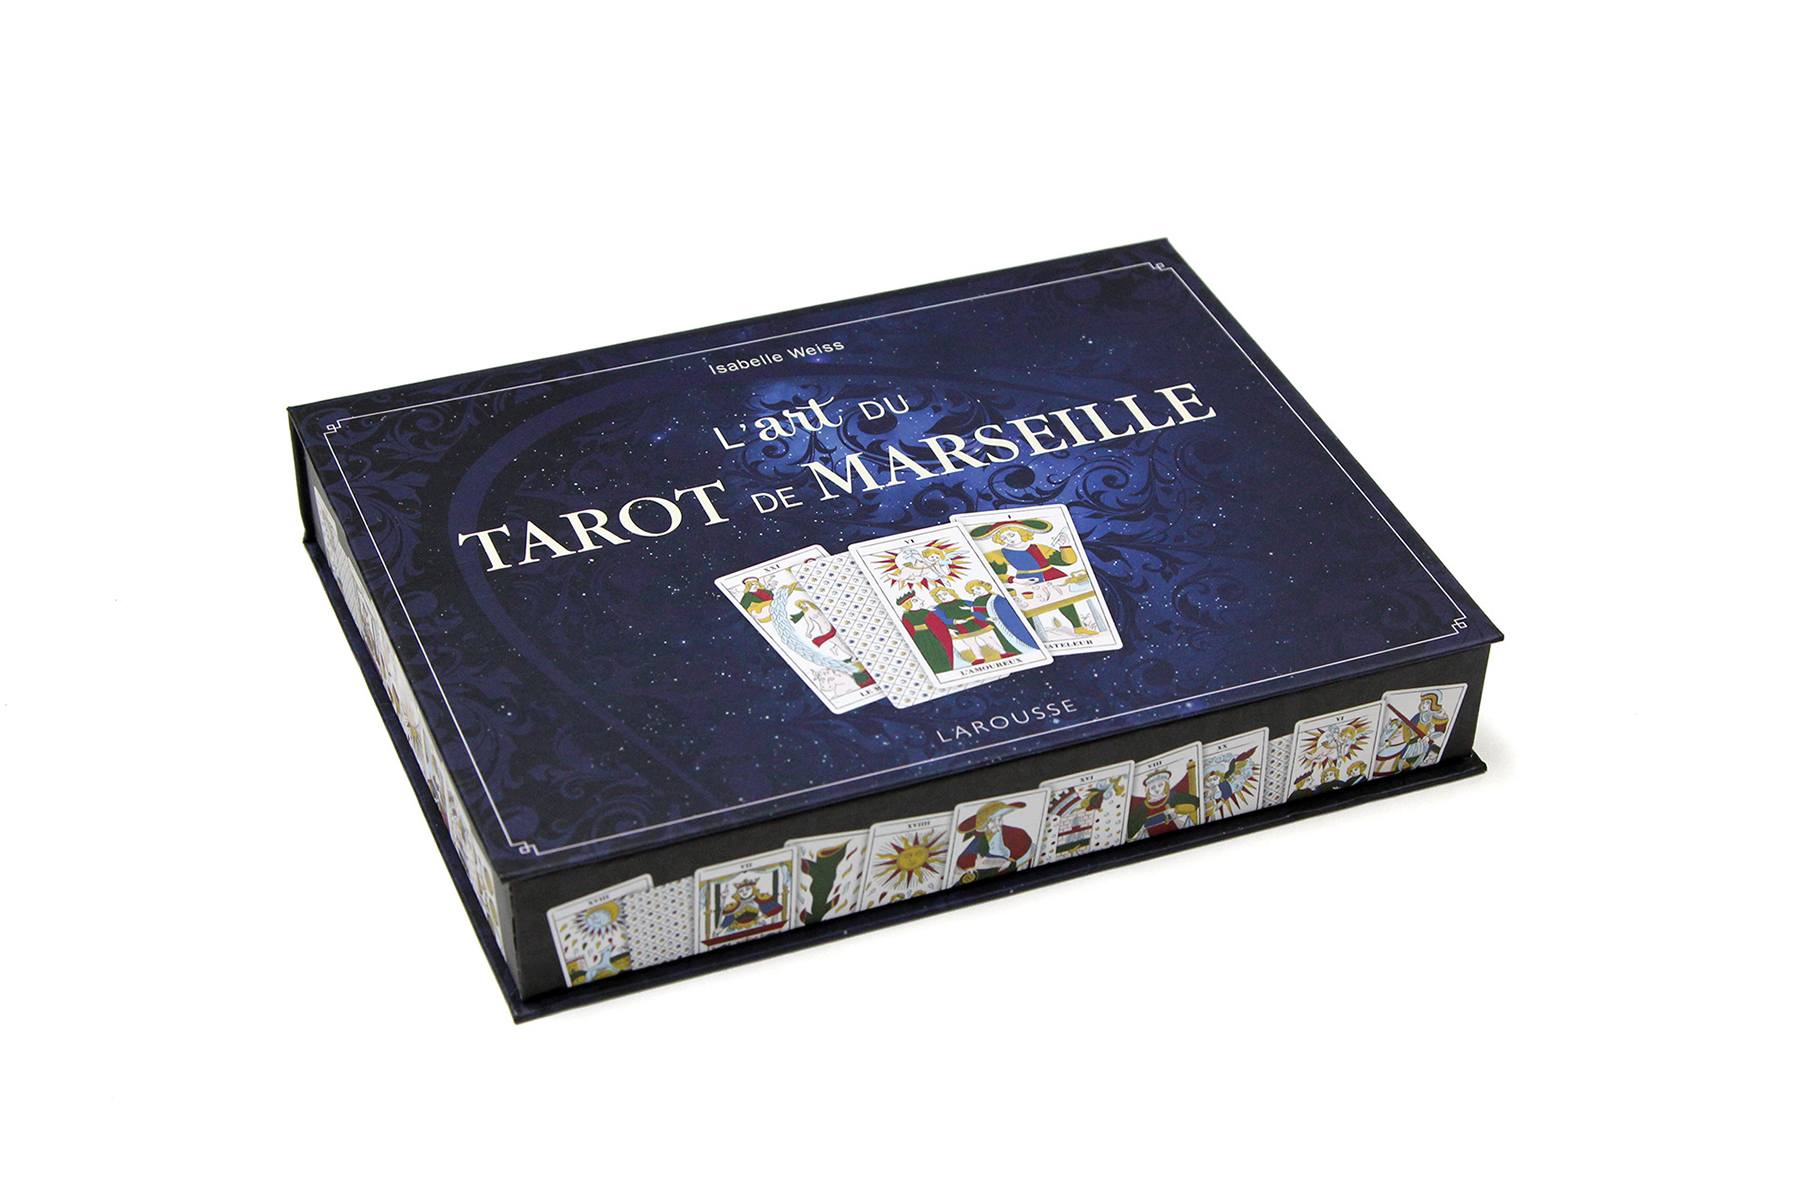 Tarot Karten Spiel On-Pack Co-Pack Druck Print Verpackung Schachtel Karton Packaging Box Starlite Veredelung Finish UV-Lack Colour 4c